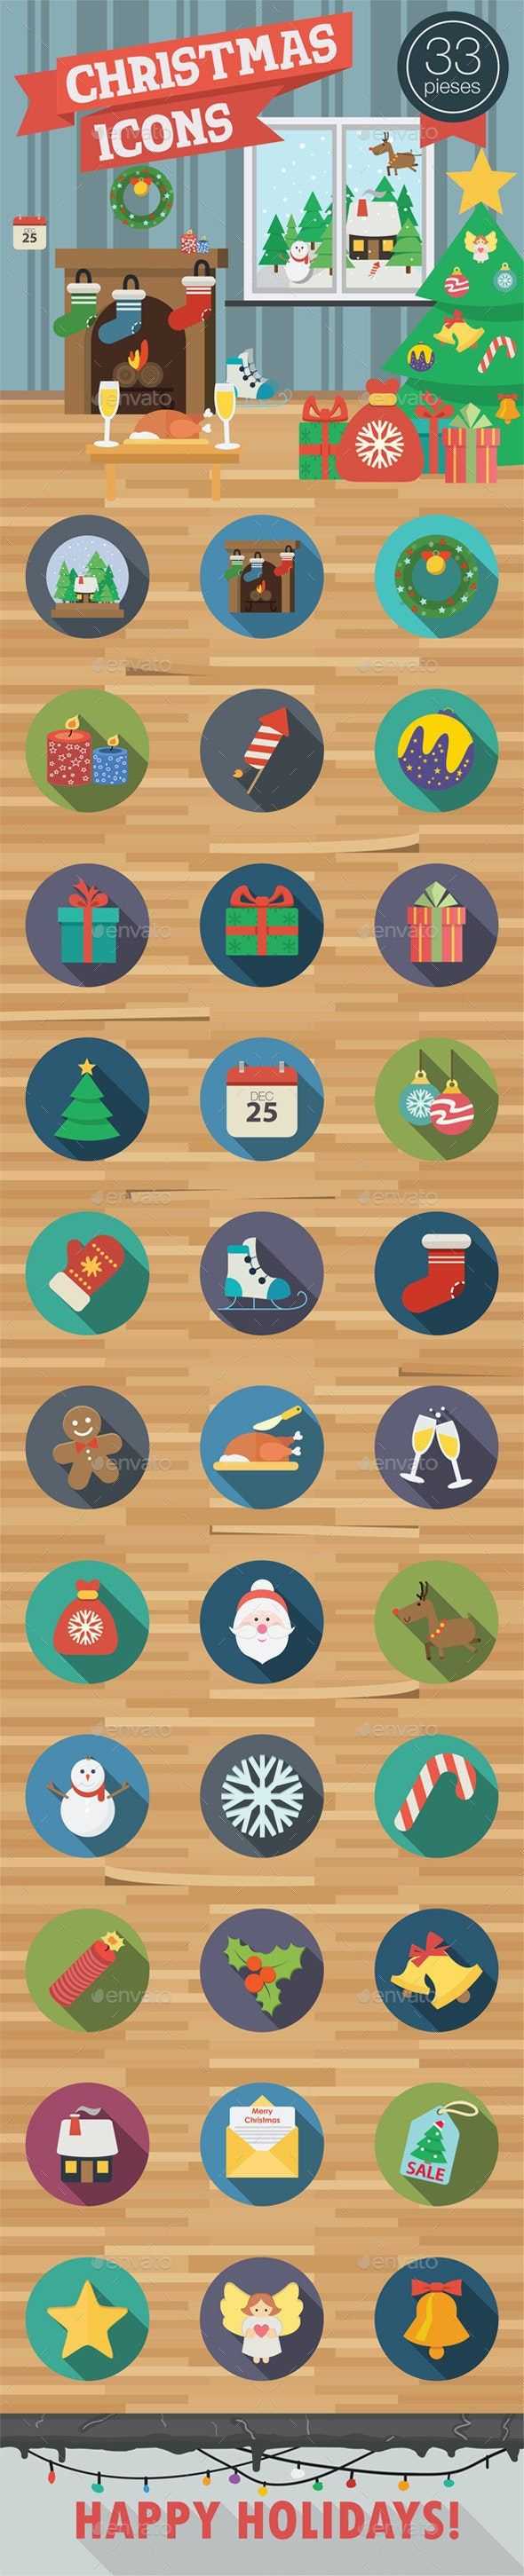 Christmas Icons in Flat Style